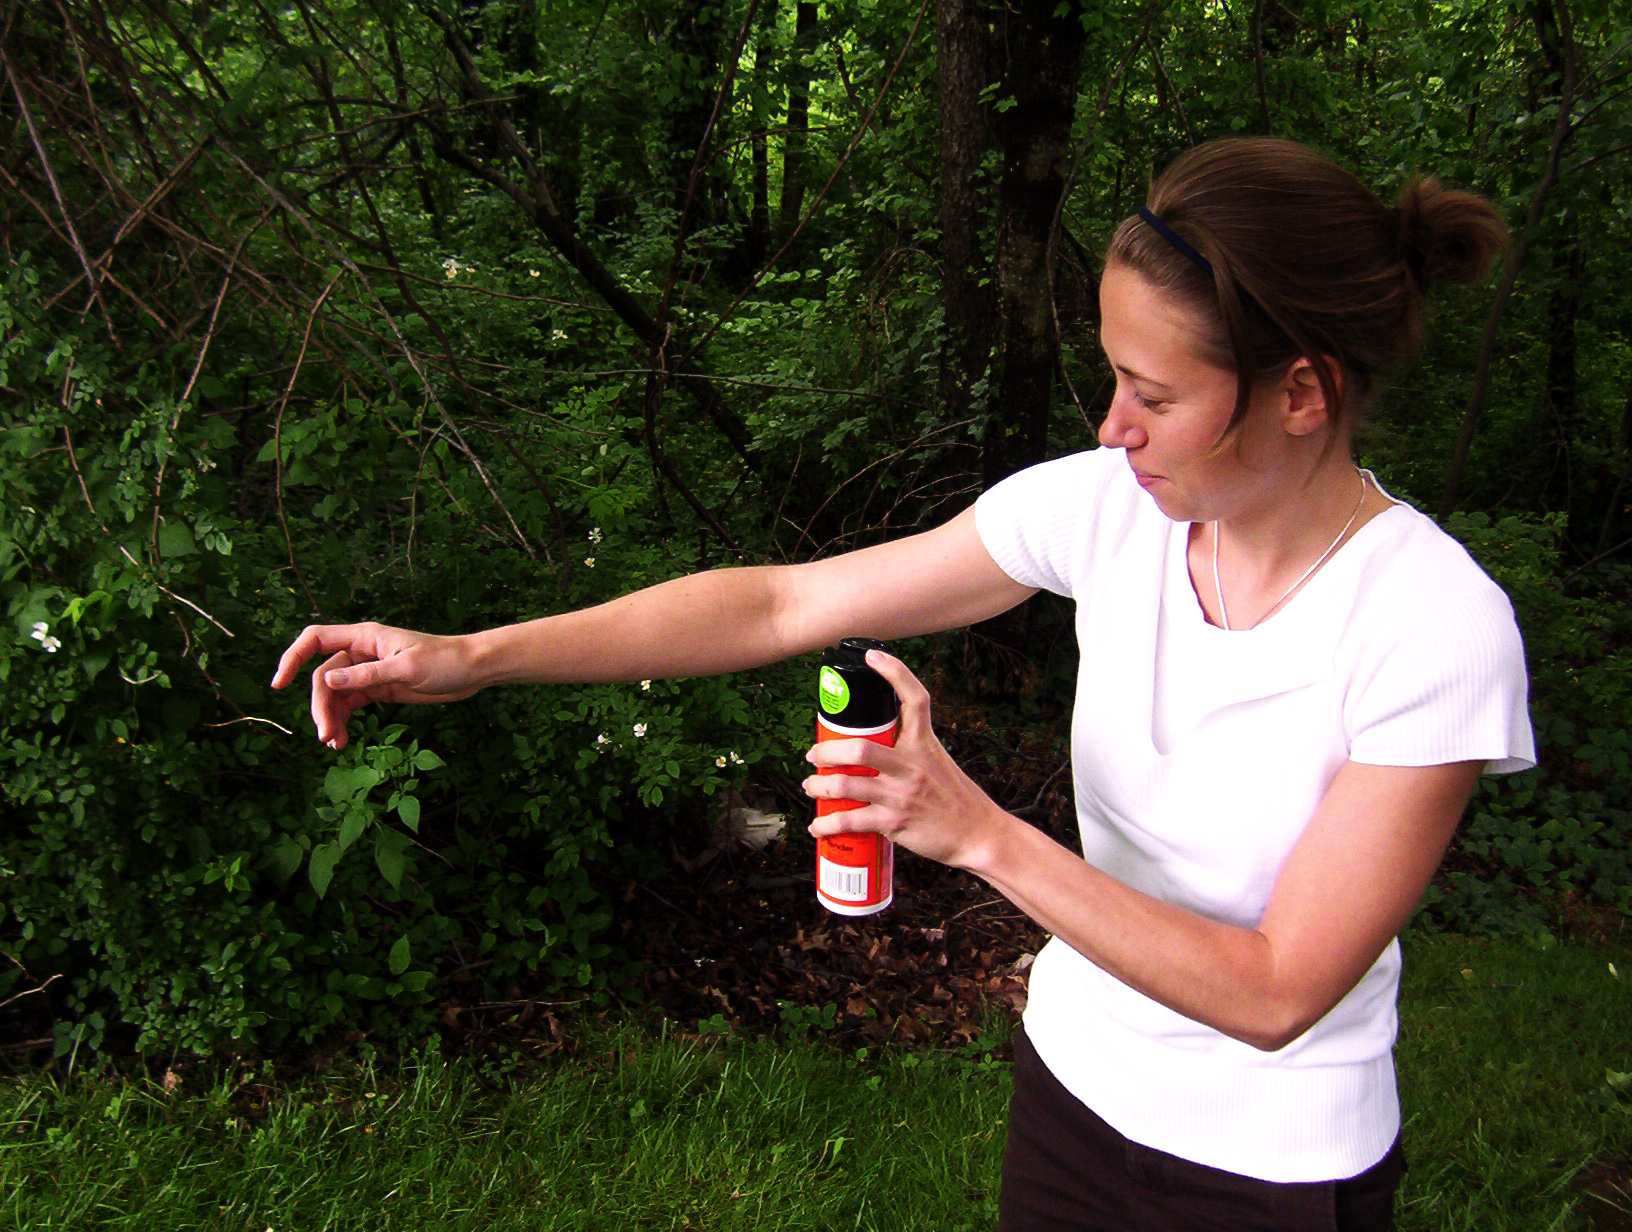 Woman spraying herself with bug spray outdoors